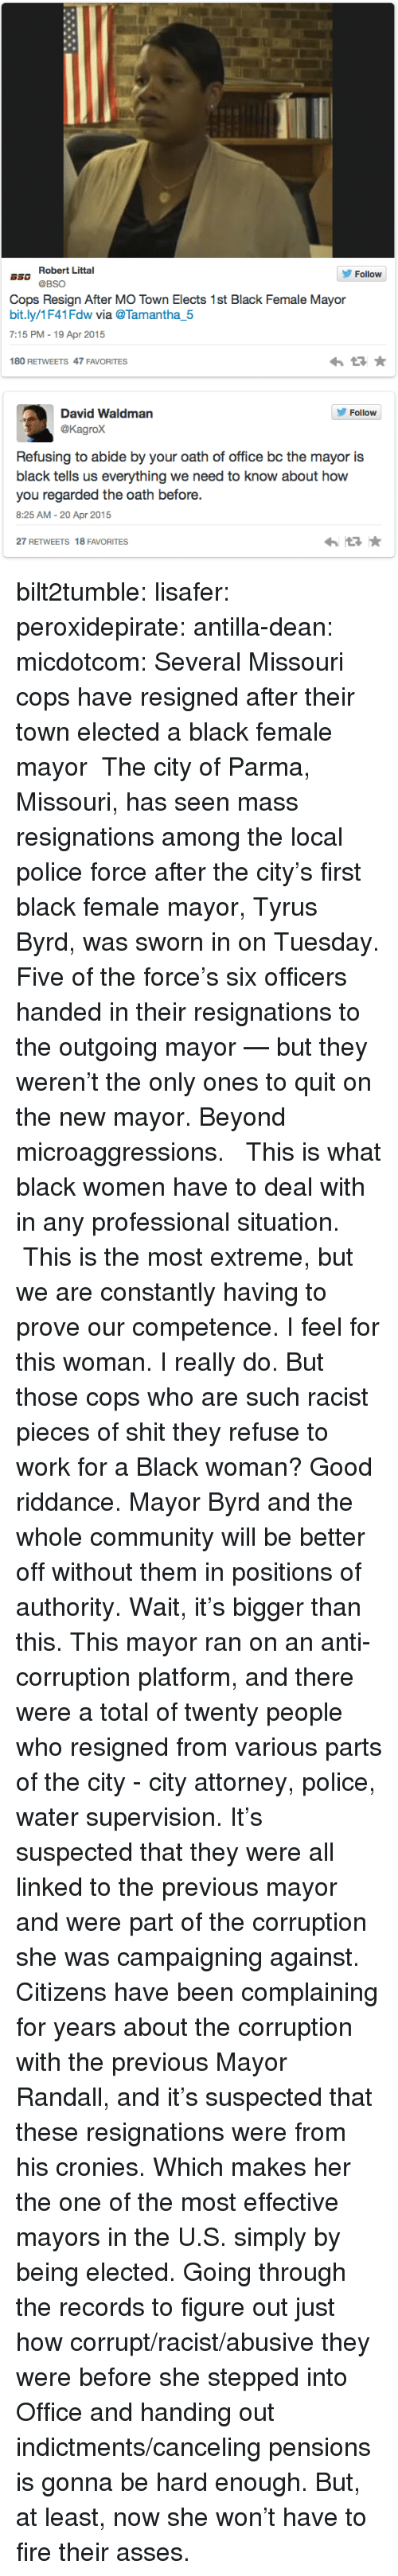 Corruption: Robert Littal  Follow  aso @BSO  Cops Resign After MO Town Elects 1st Black Female Mayor  bit.ly/1F41Fdw wia @Tamantha5  7:15 PM - 19 Apr 2015  わ ★  180 RETWEETS 47 FAVORITES   David Waldman  @Kagrox  Follow  Refusing to abide by your oath of office bc the mayor is  black tells us everything we need to know about how  you regarded the oath before.  8:25 AM-20 Apr 2015  27 RETWEETS 18 FAVORITES bilt2tumble:  lisafer:  peroxidepirate:  antilla-dean:   micdotcom:    Several Missouri cops have resigned after their town elected a black female mayor The city of Parma, Missouri, has seen mass resignations  among the local police force after the city's first black female  mayor, Tyrus Byrd, was sworn in on Tuesday. Five of the force's six officers handed in their resignations to the outgoing mayor — but they weren't the only ones to quit on the new mayor.   Beyond microaggressions.  This is what black women have to deal with in any professional situation. This is the most extreme, but we are constantly having to prove our competence.   I feel for this woman. I really do.  But those cops who are such racist pieces of shit they refuse to work for a Black woman? Good riddance. Mayor Byrd and the whole community will be better off without them in positions of authority.  Wait, it's bigger than this. This mayor ran on an anti-corruption platform, and there were a total of twenty people who resigned from various parts of the city - city attorney, police, water supervision.  It's suspected that they were all linked to the previous mayor and were part of the corruption she was campaigning against. Citizens have been complaining for years about the corruption with the previous Mayor Randall, and it's suspected that these resignations were from his cronies.  Which makes her the one of the most effective mayors in the U.S. simply by being elected.   Going through the records to figure out just how corrupt/racist/abusive they were before she stepped into Office and handing 